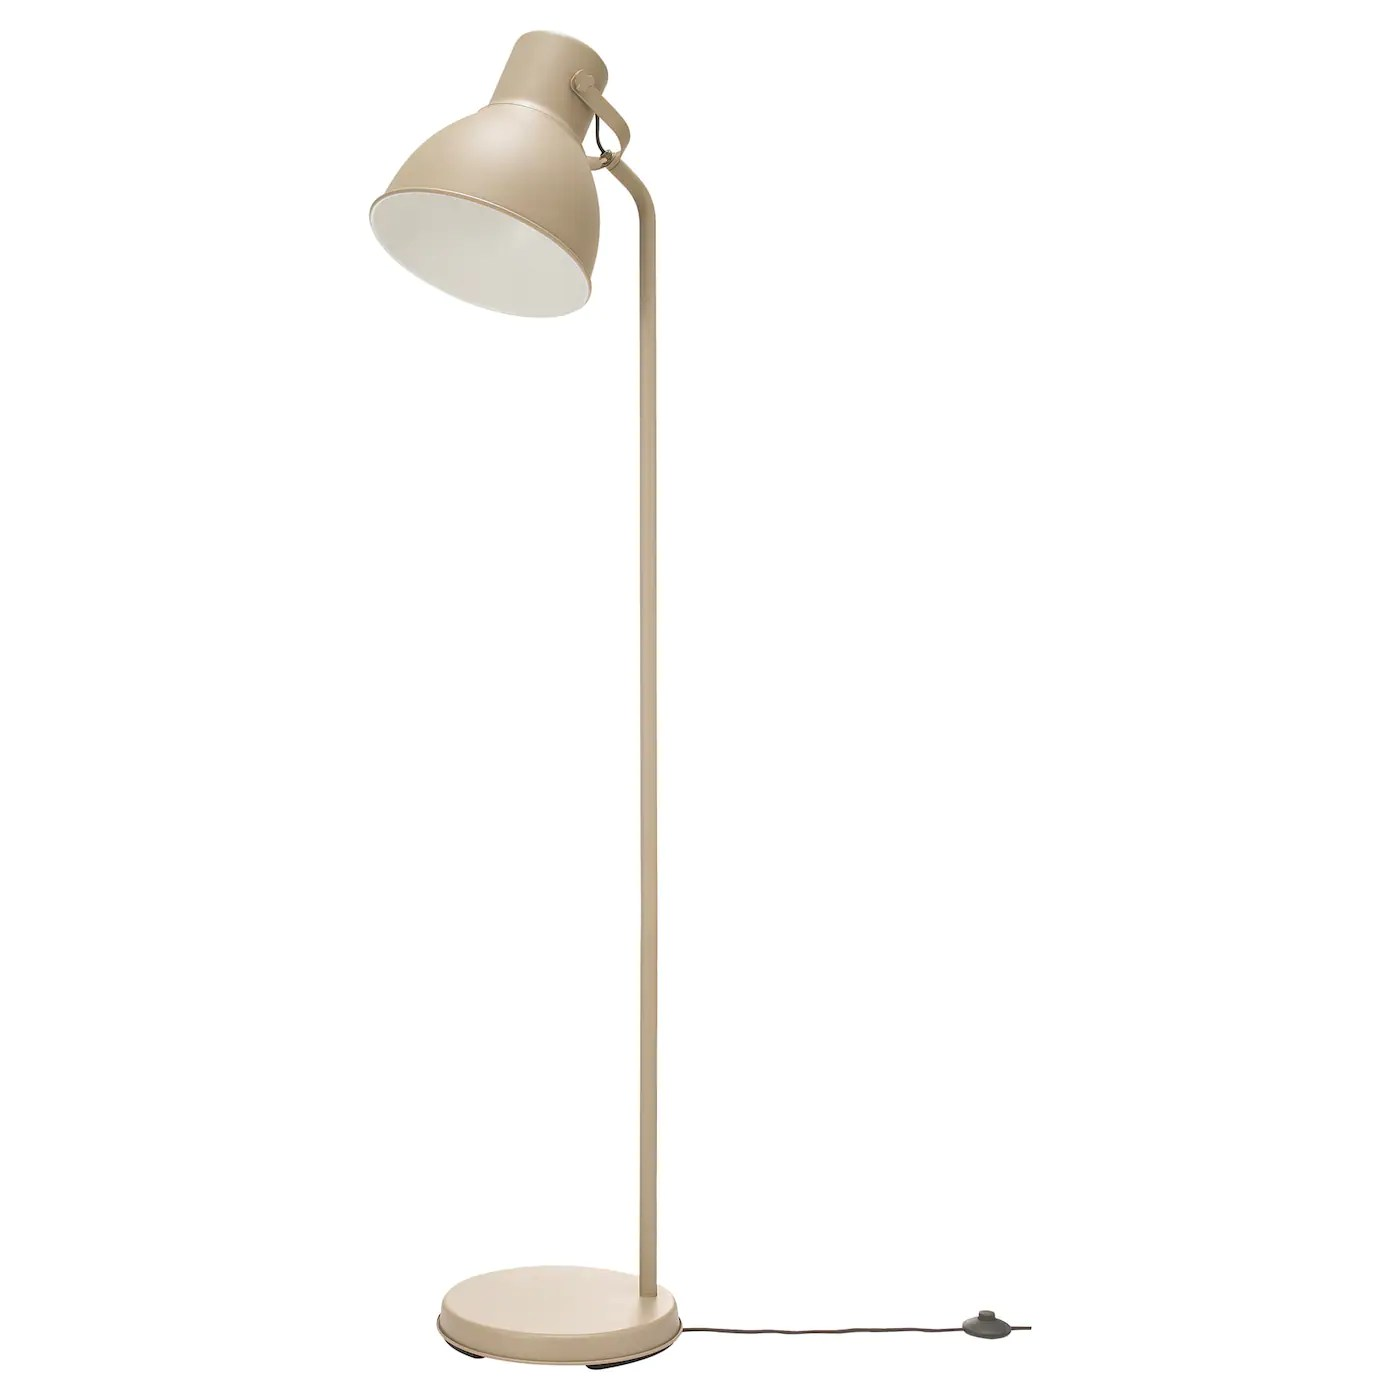 Fancy Standing Lamps Ikea Floor Lamps Shop Online In Store